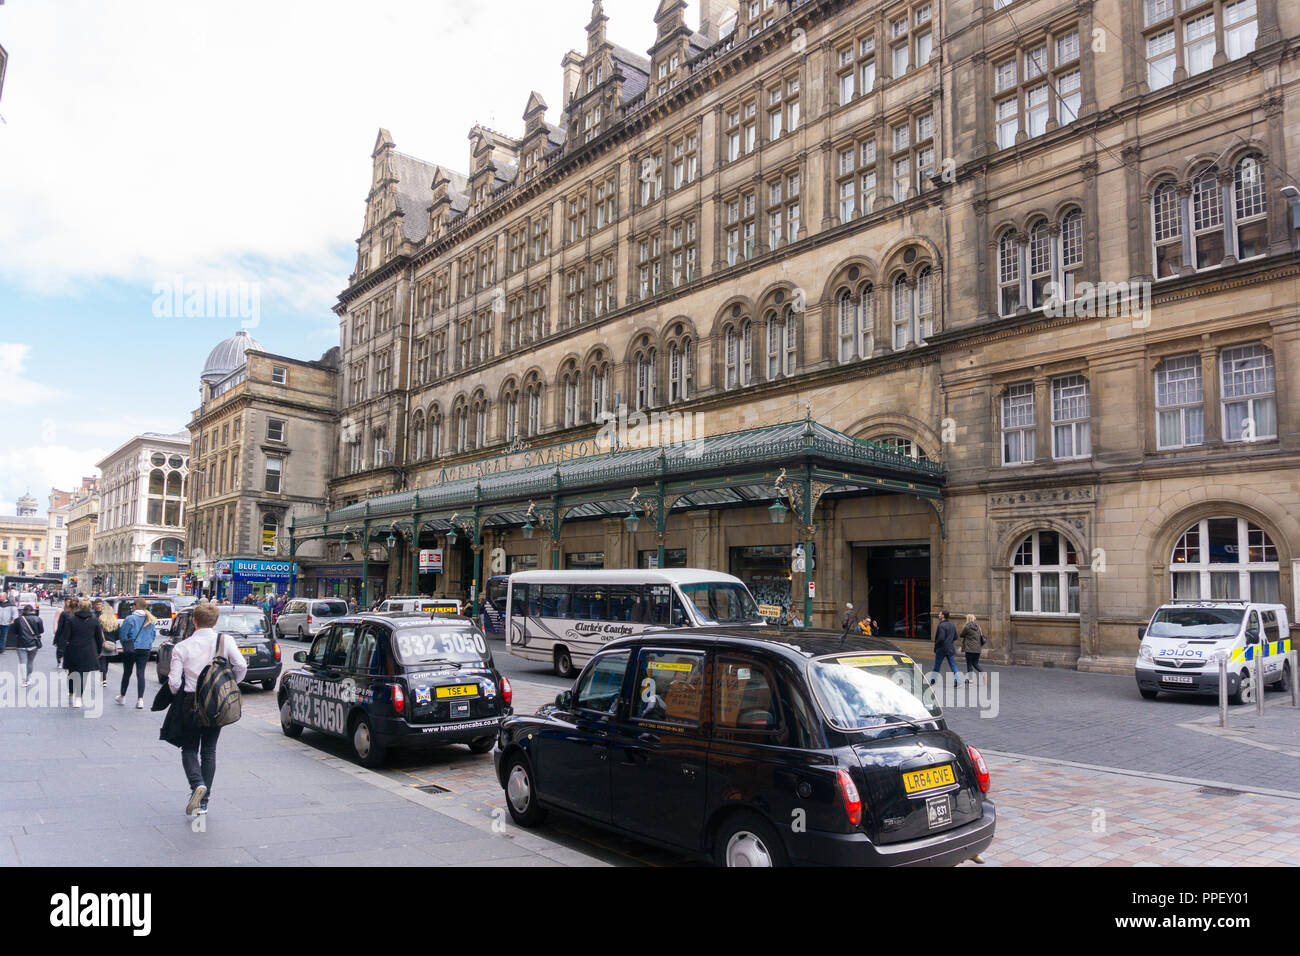 Glasgow City, Scotland, UK - September 22, 2018: Looking along the Goedon Street entrance to Glasgow Central Station busy with pedestrians and traffic - Stock Image